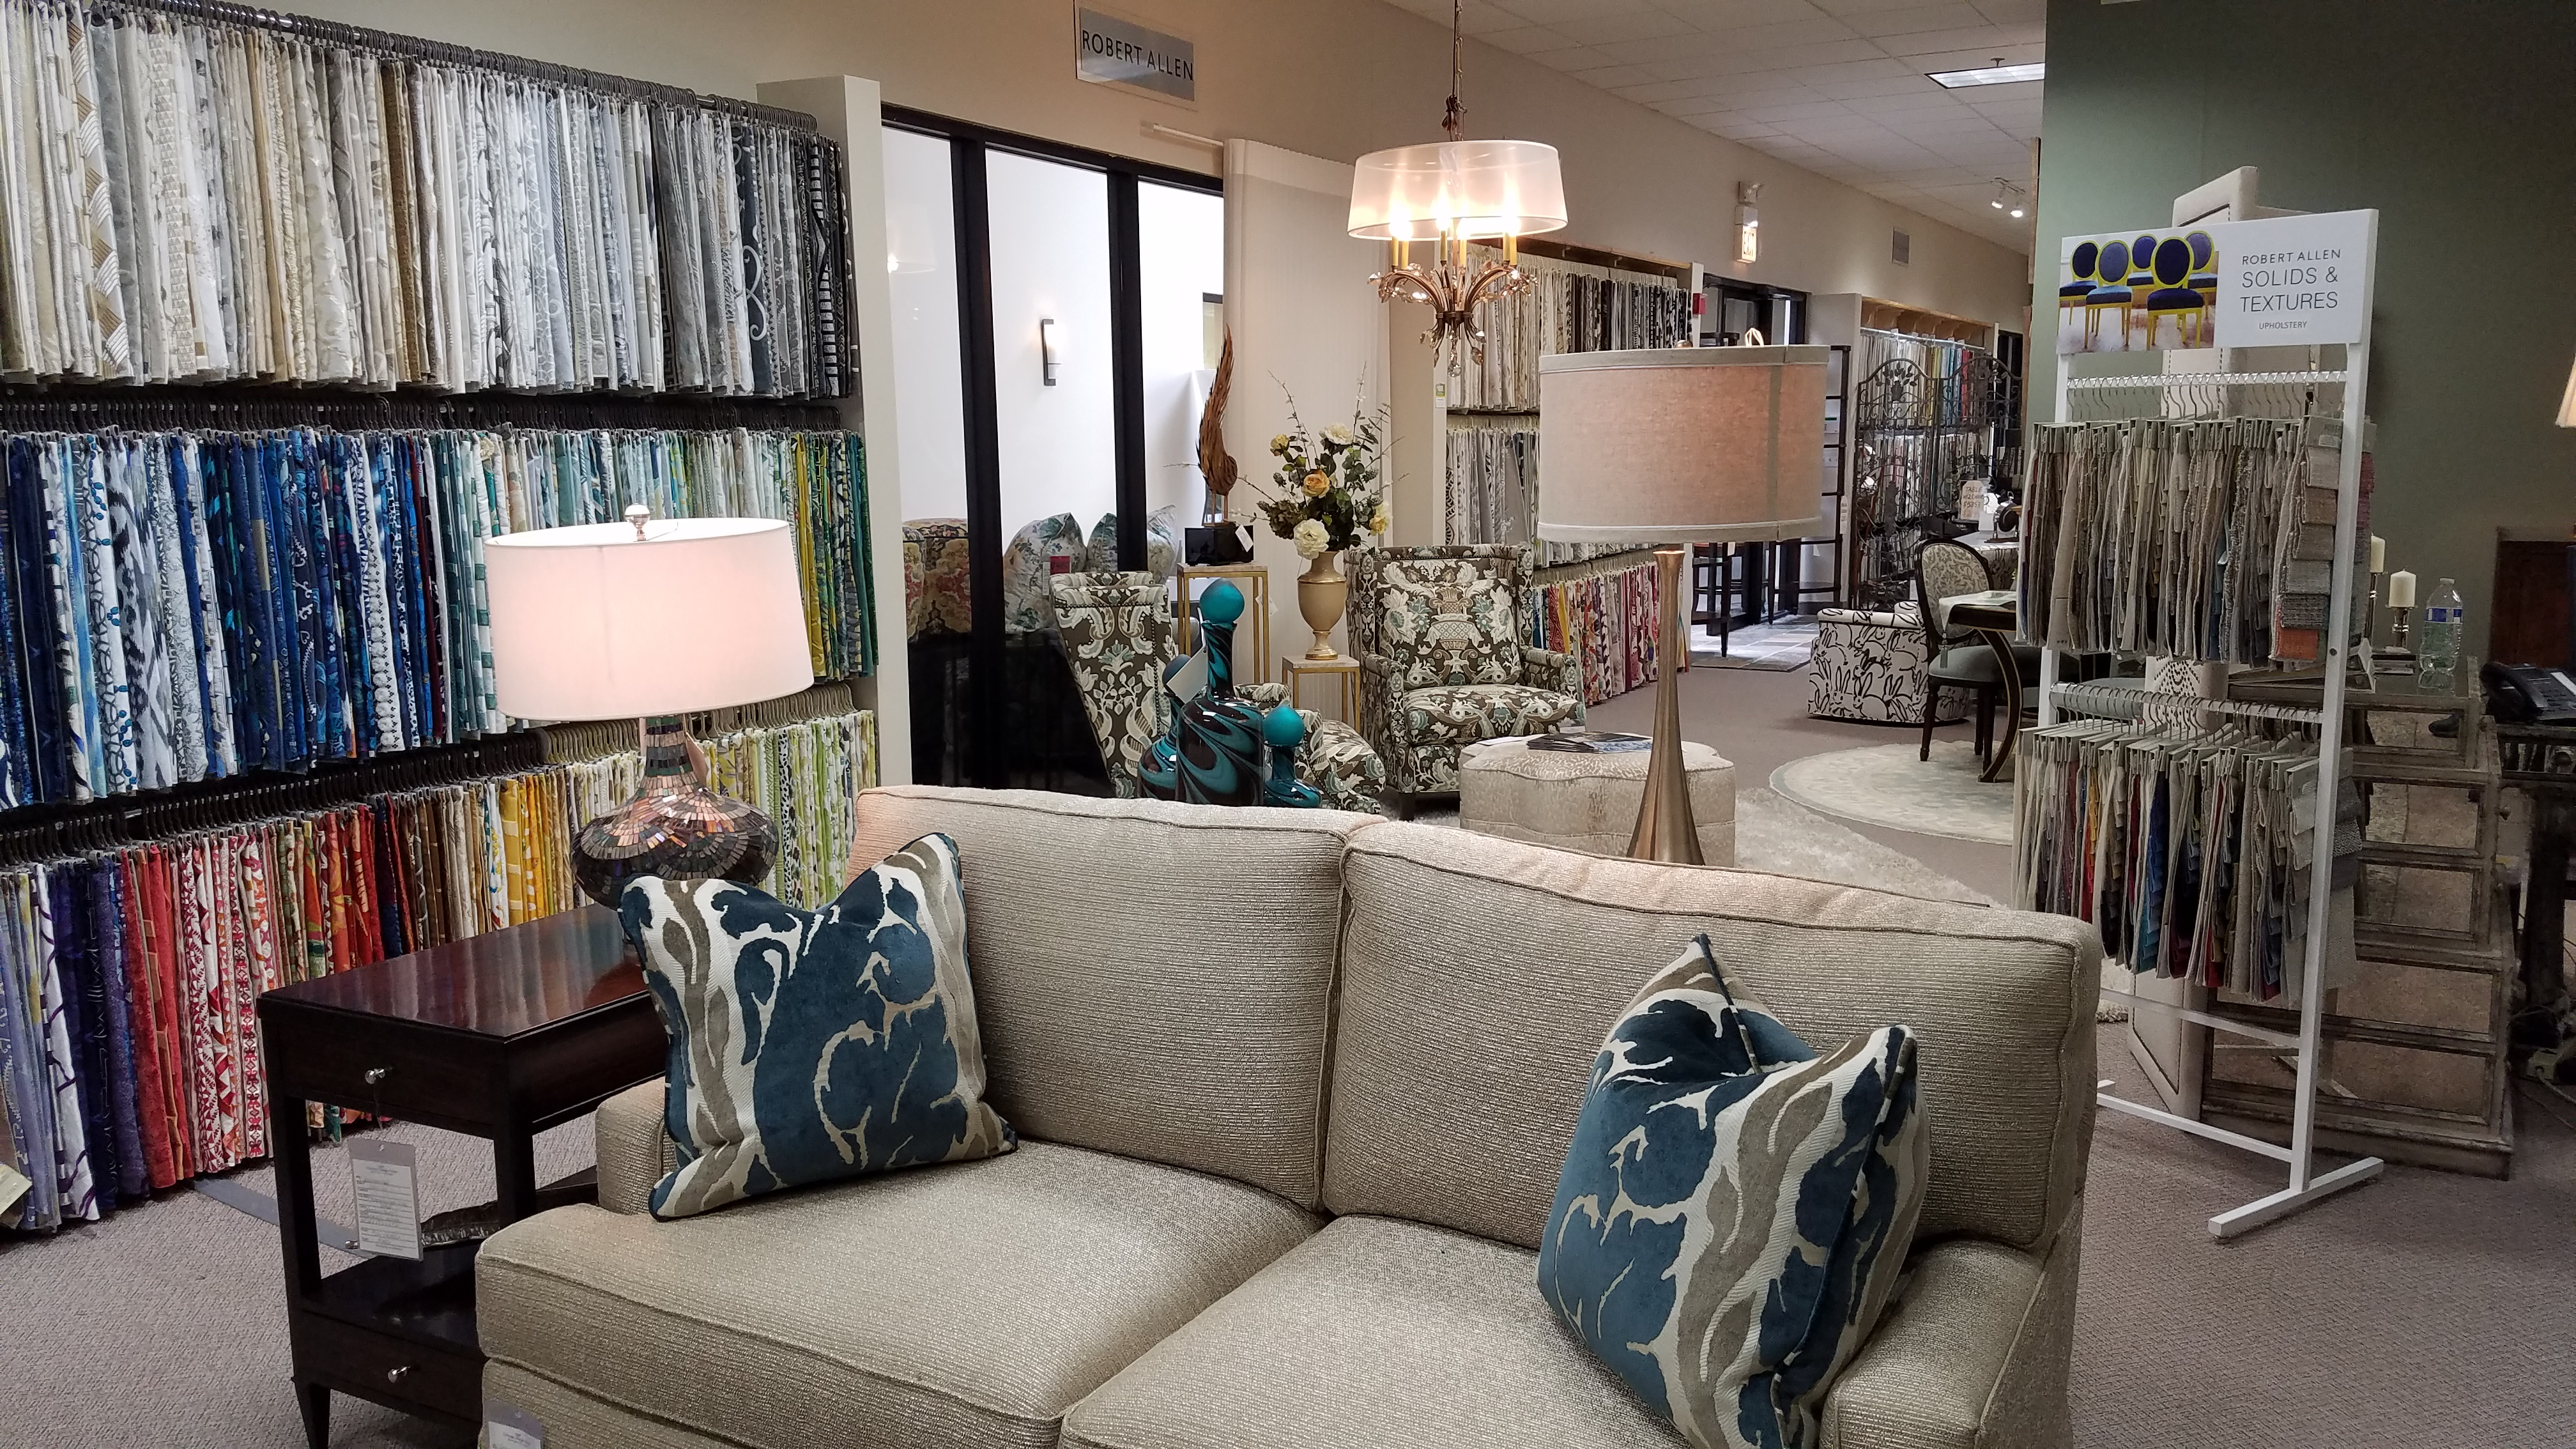 Chicago Design Team Is A Comprehensive, Multi Line Showroom Serving Interior  Designers Since 1995. CDT Provides An Efficient, Service Oriented Resource  For ...